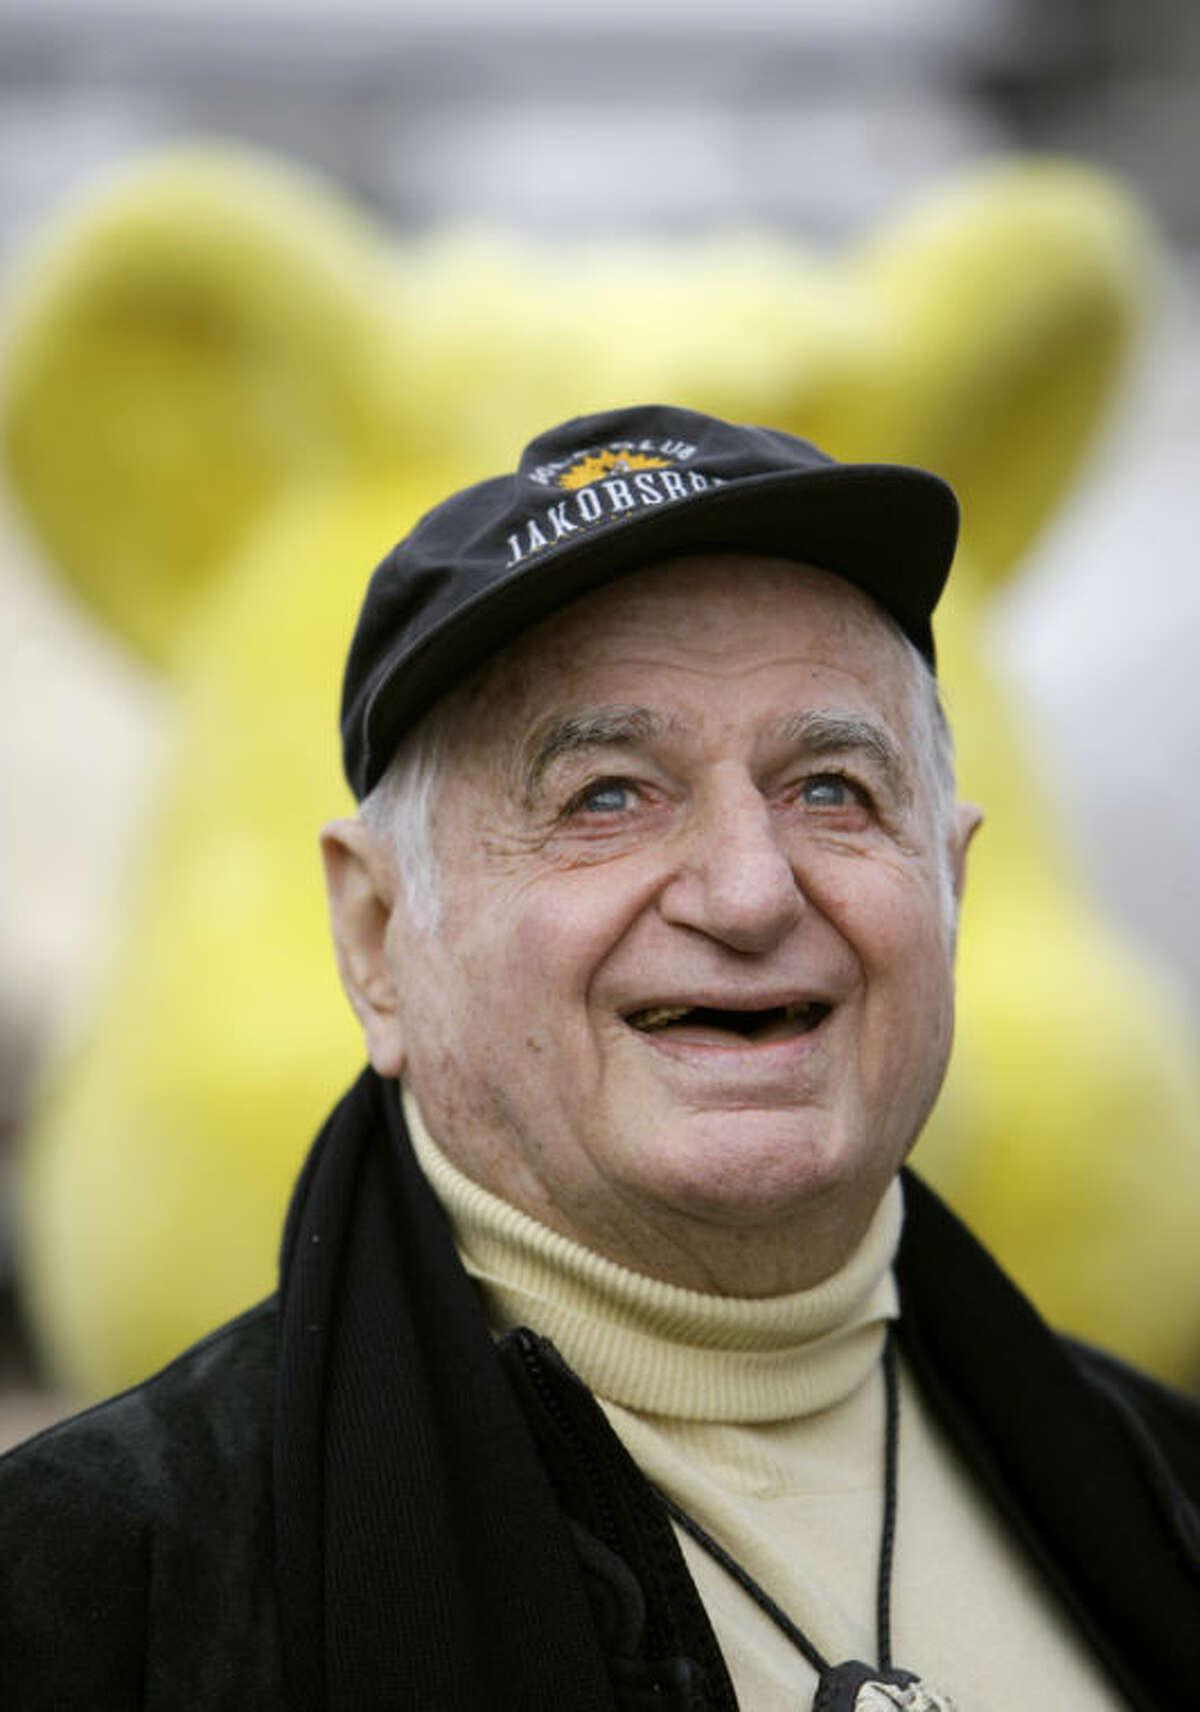 The Oct. 22, 2009 photo shows Hans Riegel, the longtime boss of German candy maker Haribo who took the gummi bear to international fame, in Bonn, western Germany. Haribo said in a statement that Riegel, the son of the company?'s founder, died of heart failure in Bonn on Tuesday. He was 90. (AP Photo/dpa, Rolf Vennenbernd)